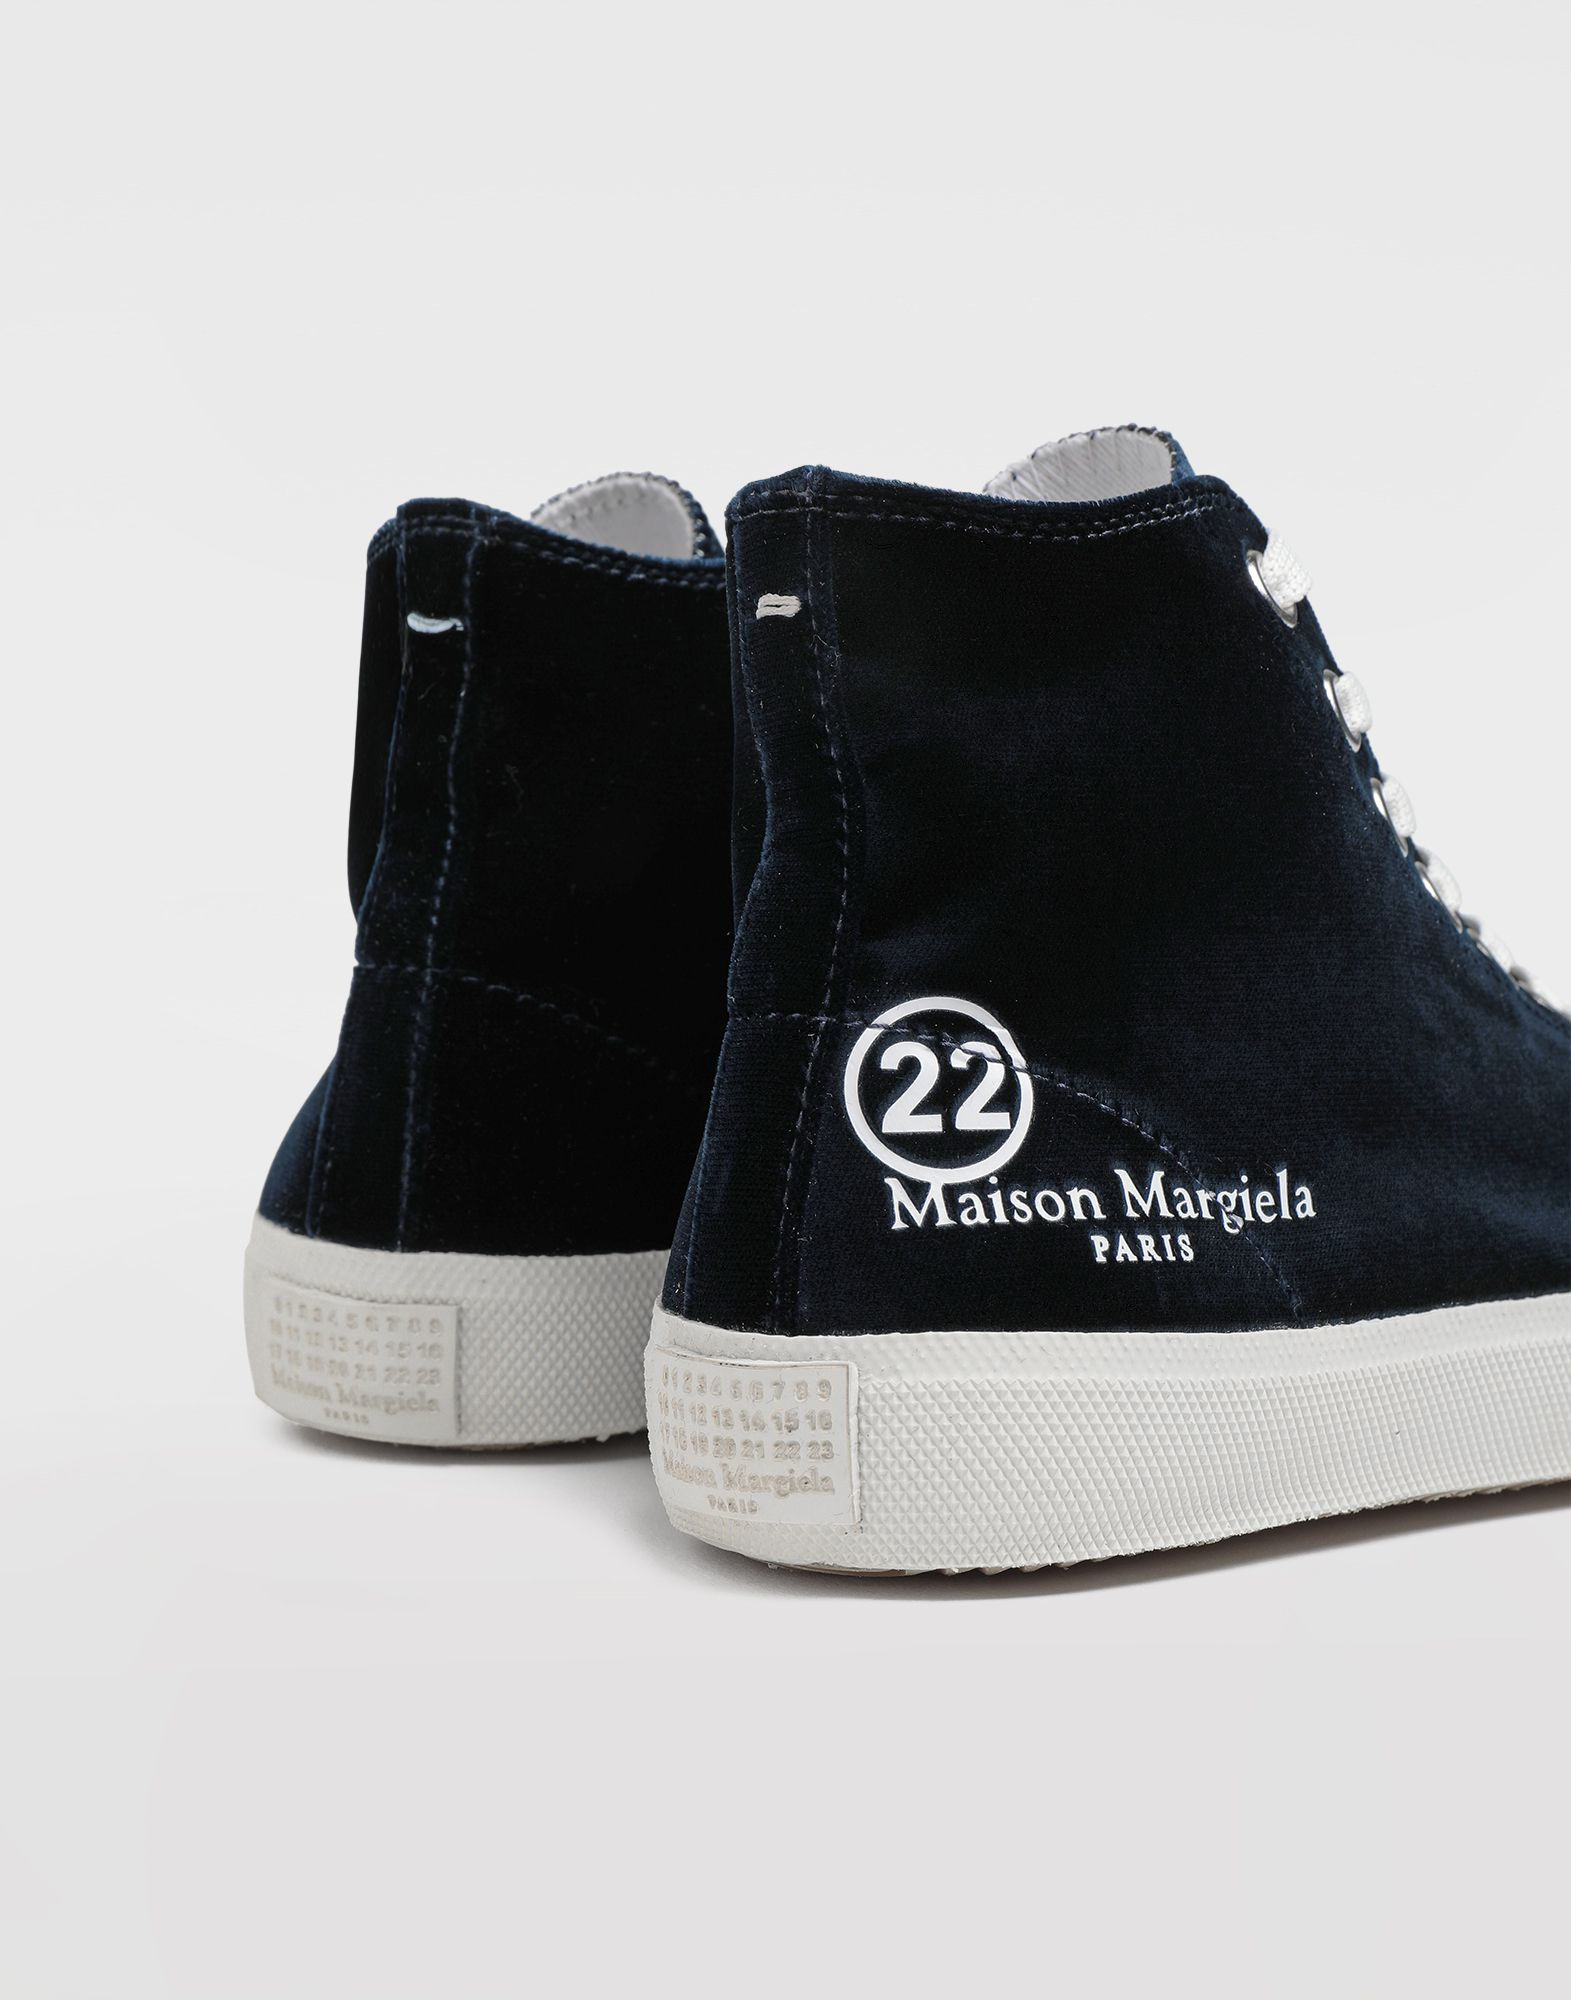 MAISON MARGIELA High-Top-Sneakers Tabi aus Samt Sneakers Tabi Dame a